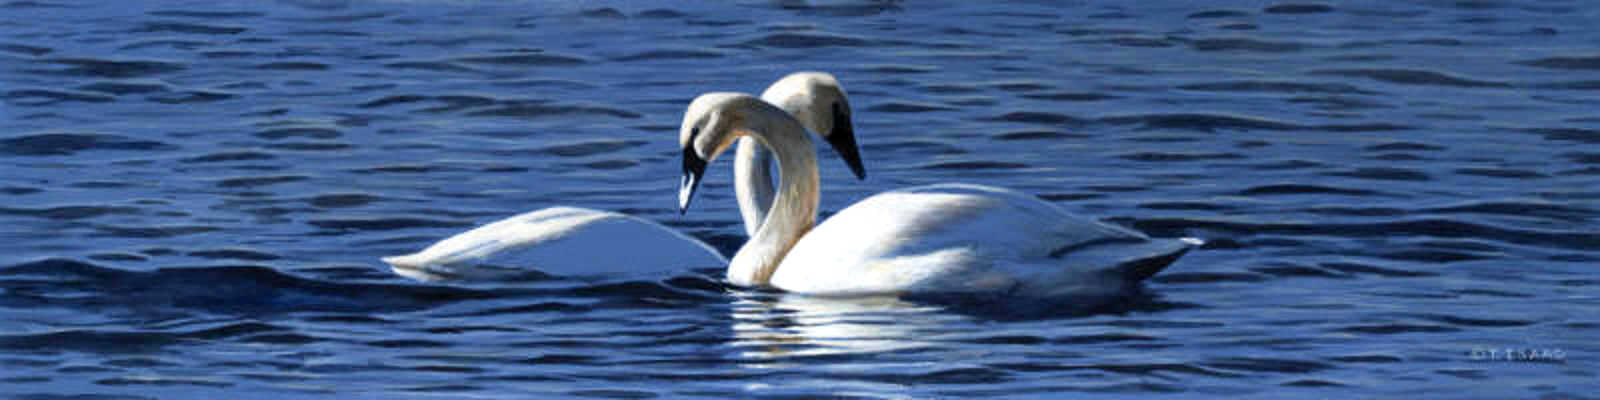 Swan Embrace Terry Isaac